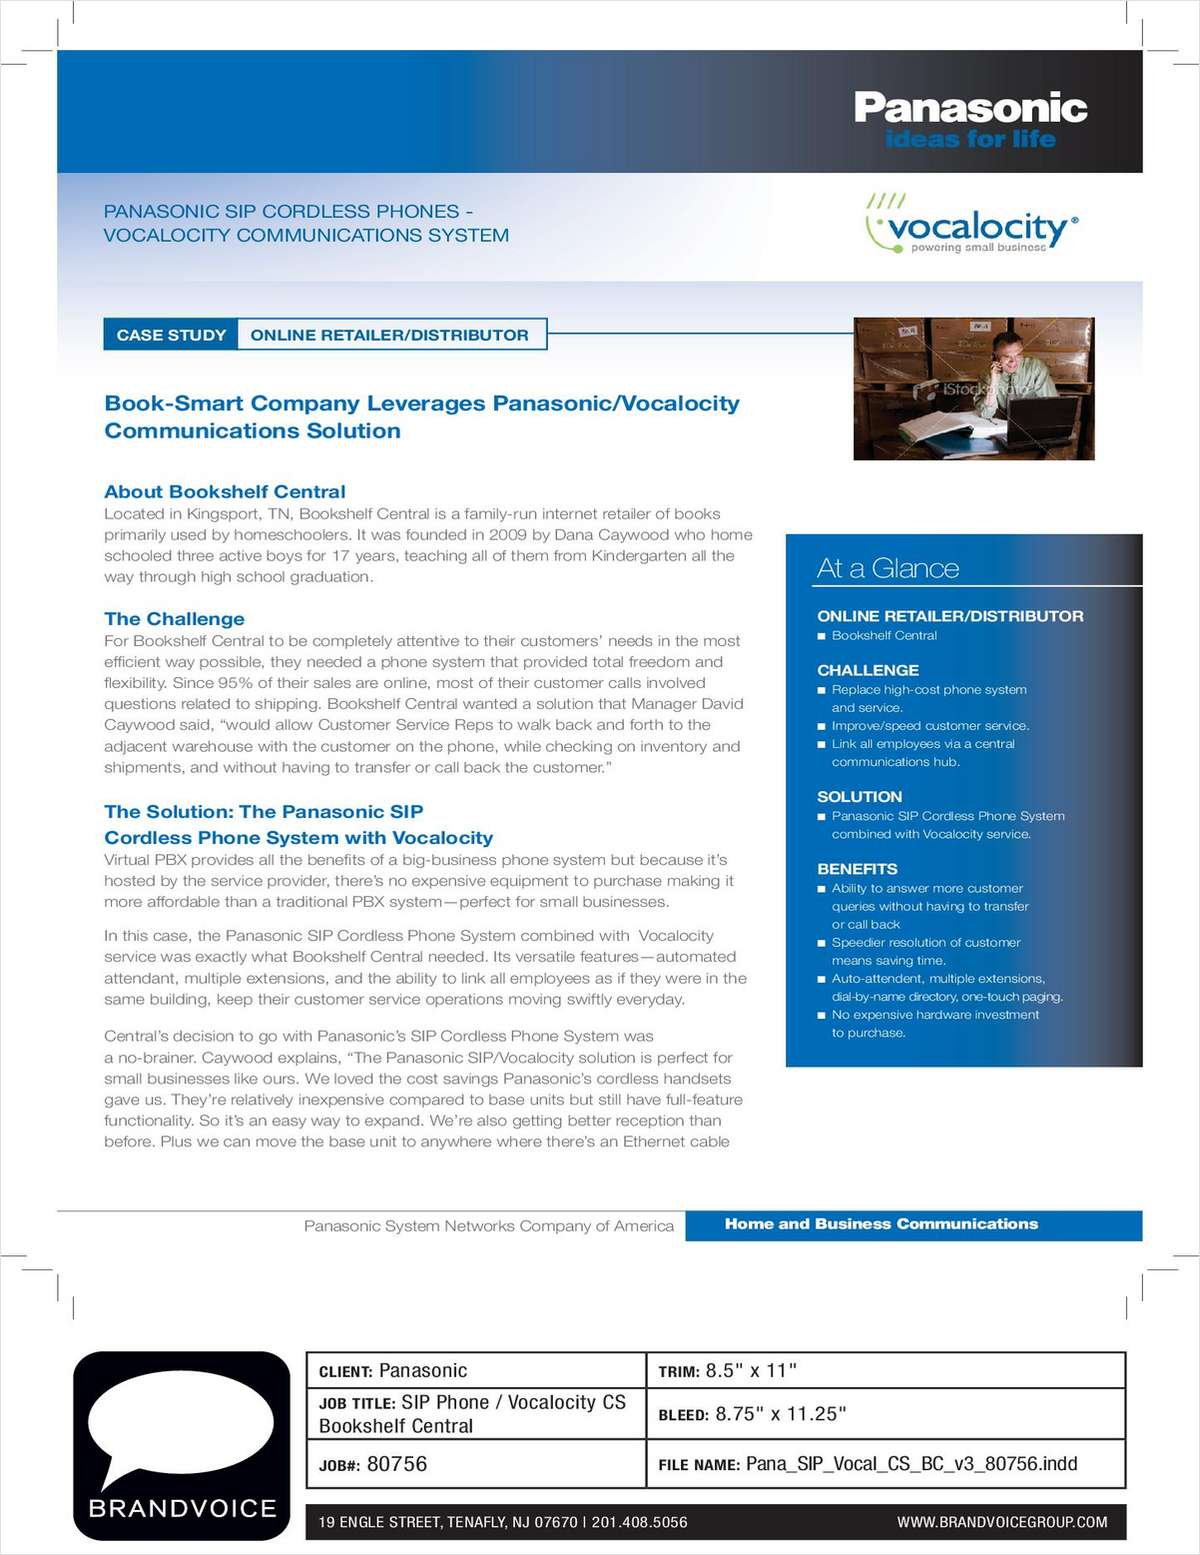 Book-Smart Company Leverages Panasonic/Vocalocity Communications Solution